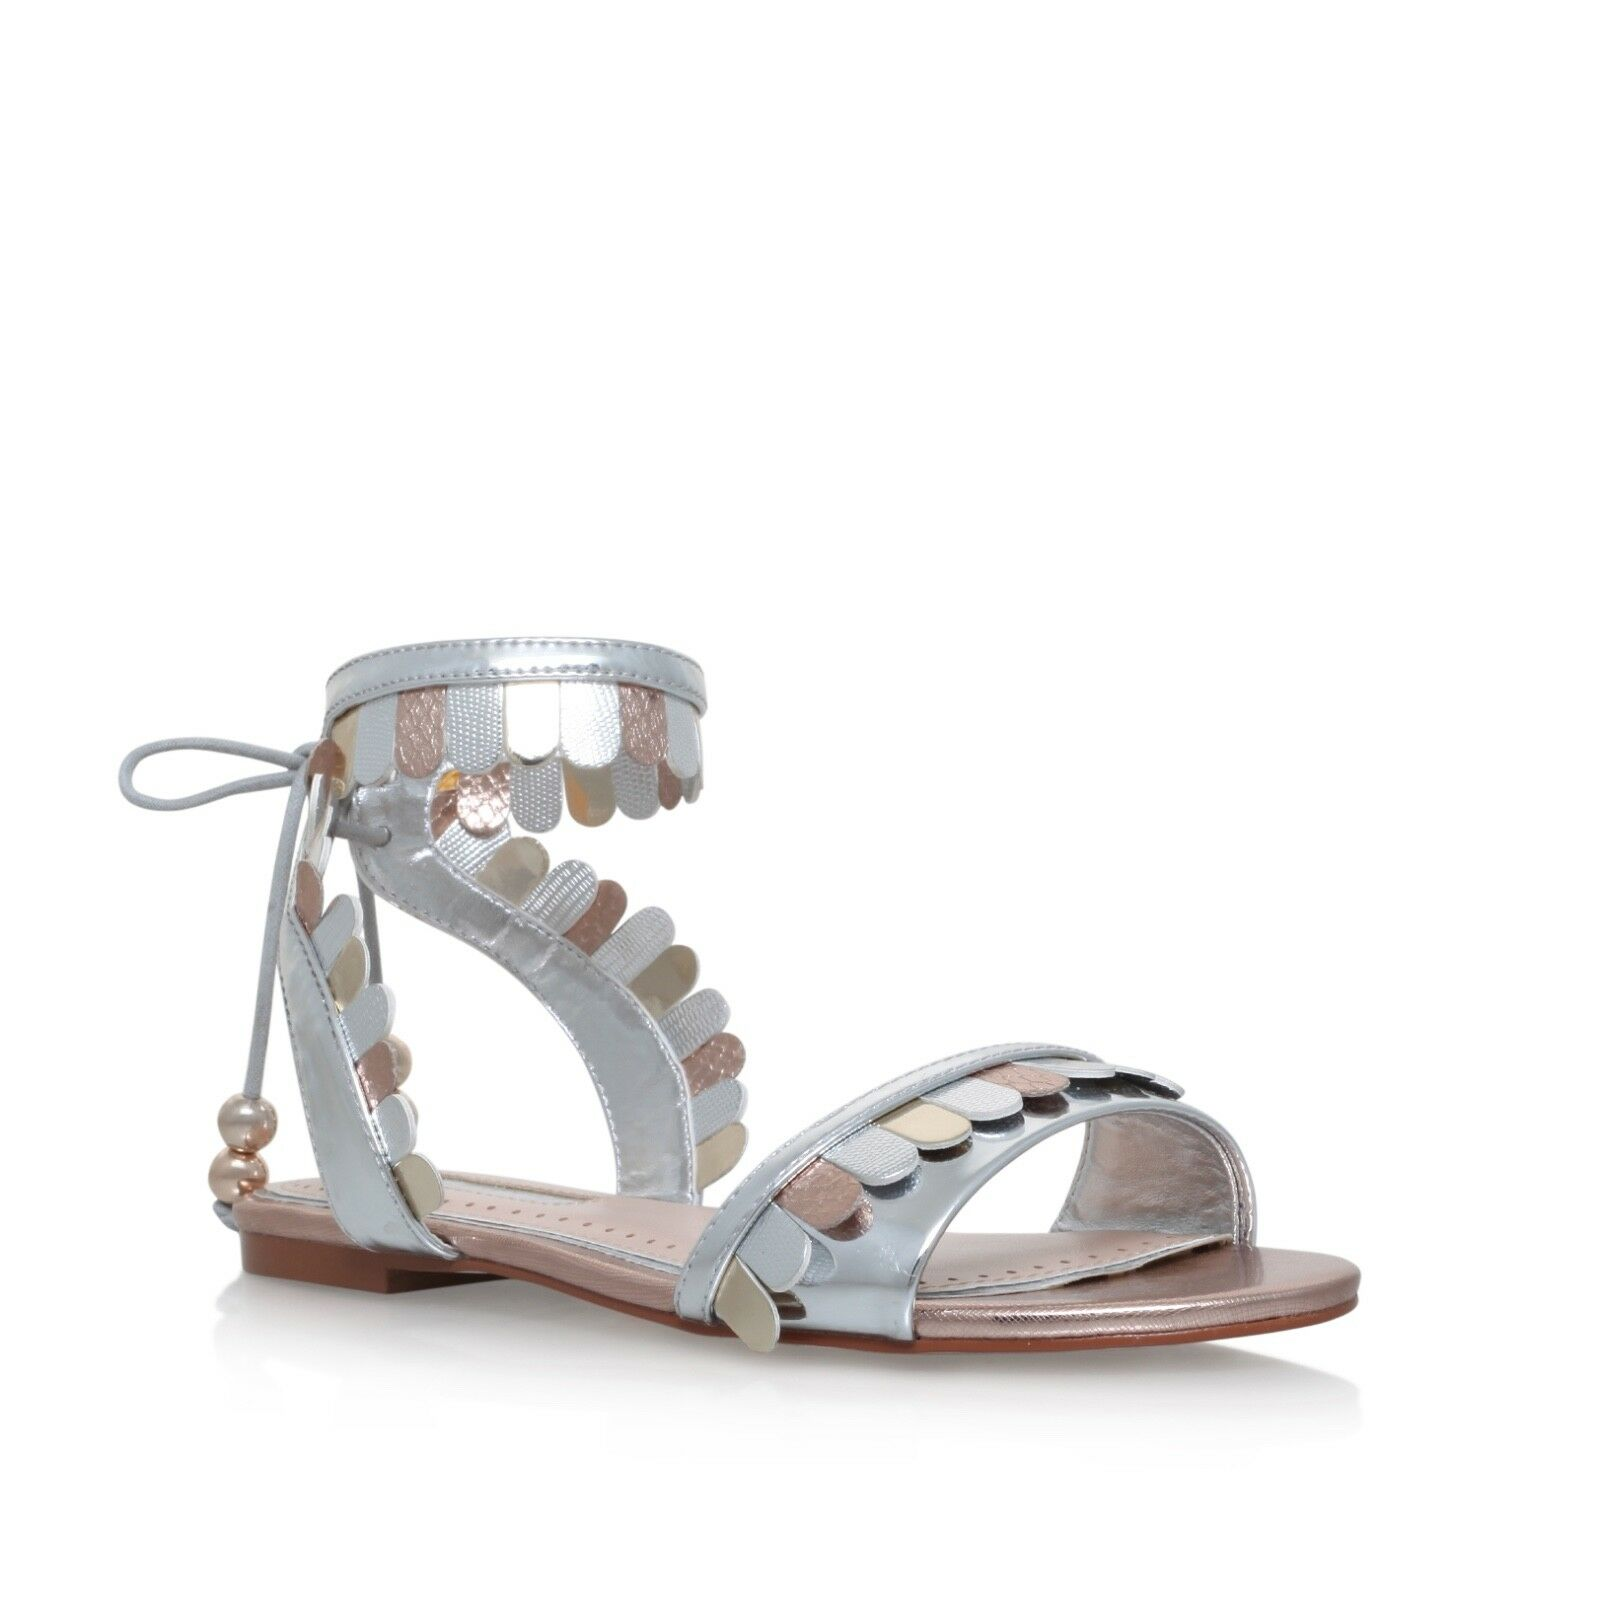 Kurt Geiger Silver Sandals Size 4 EU 37 Miss KG KG KG Brand New in Box 28b4cf